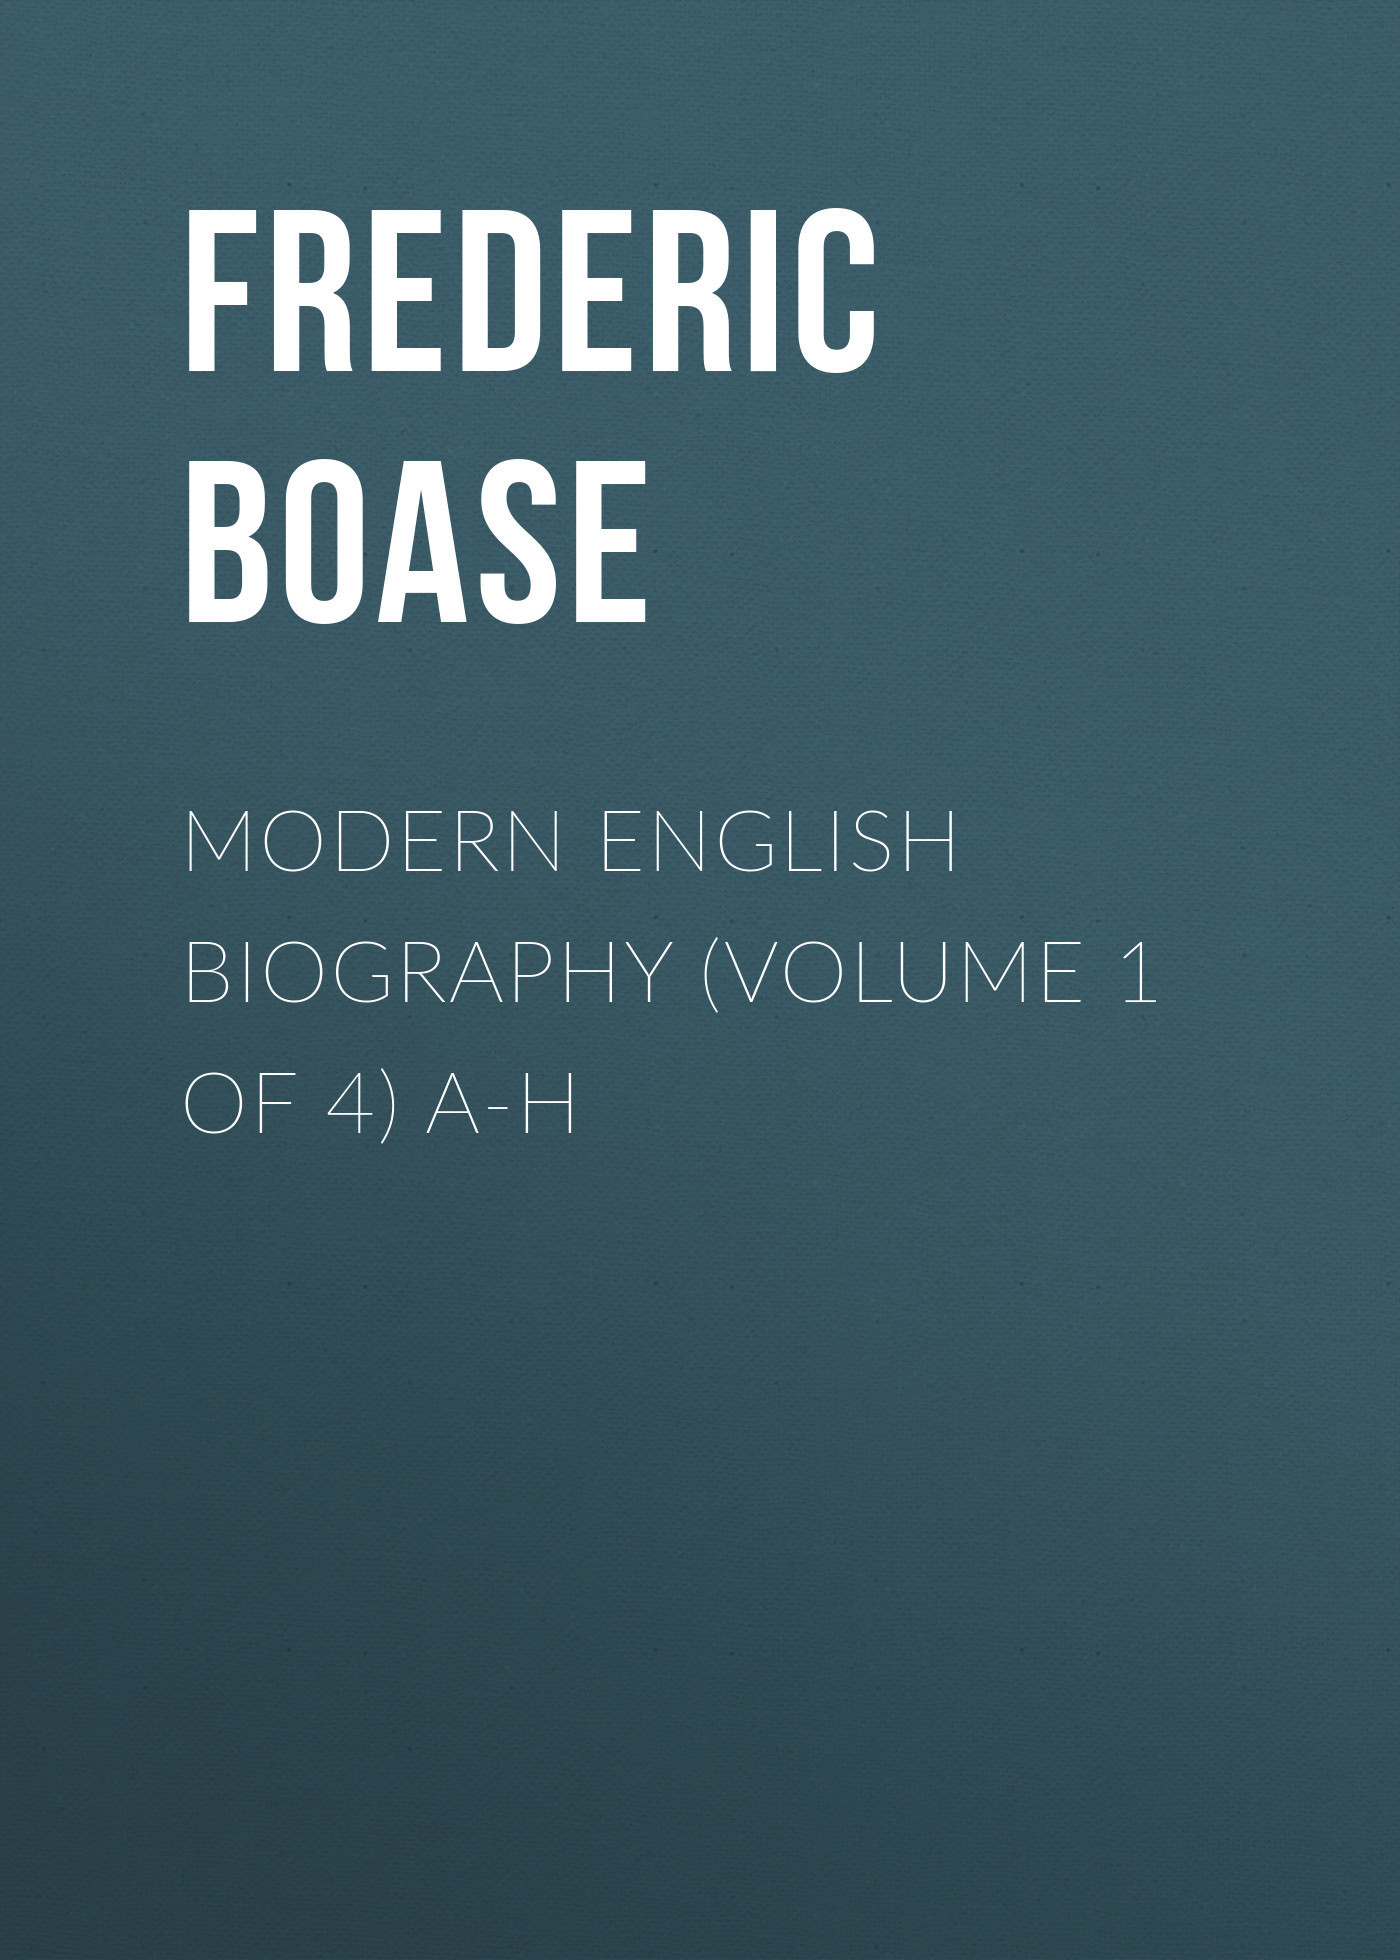 Frederic Boase Modern English Biography (volume 1 of 4) A-H